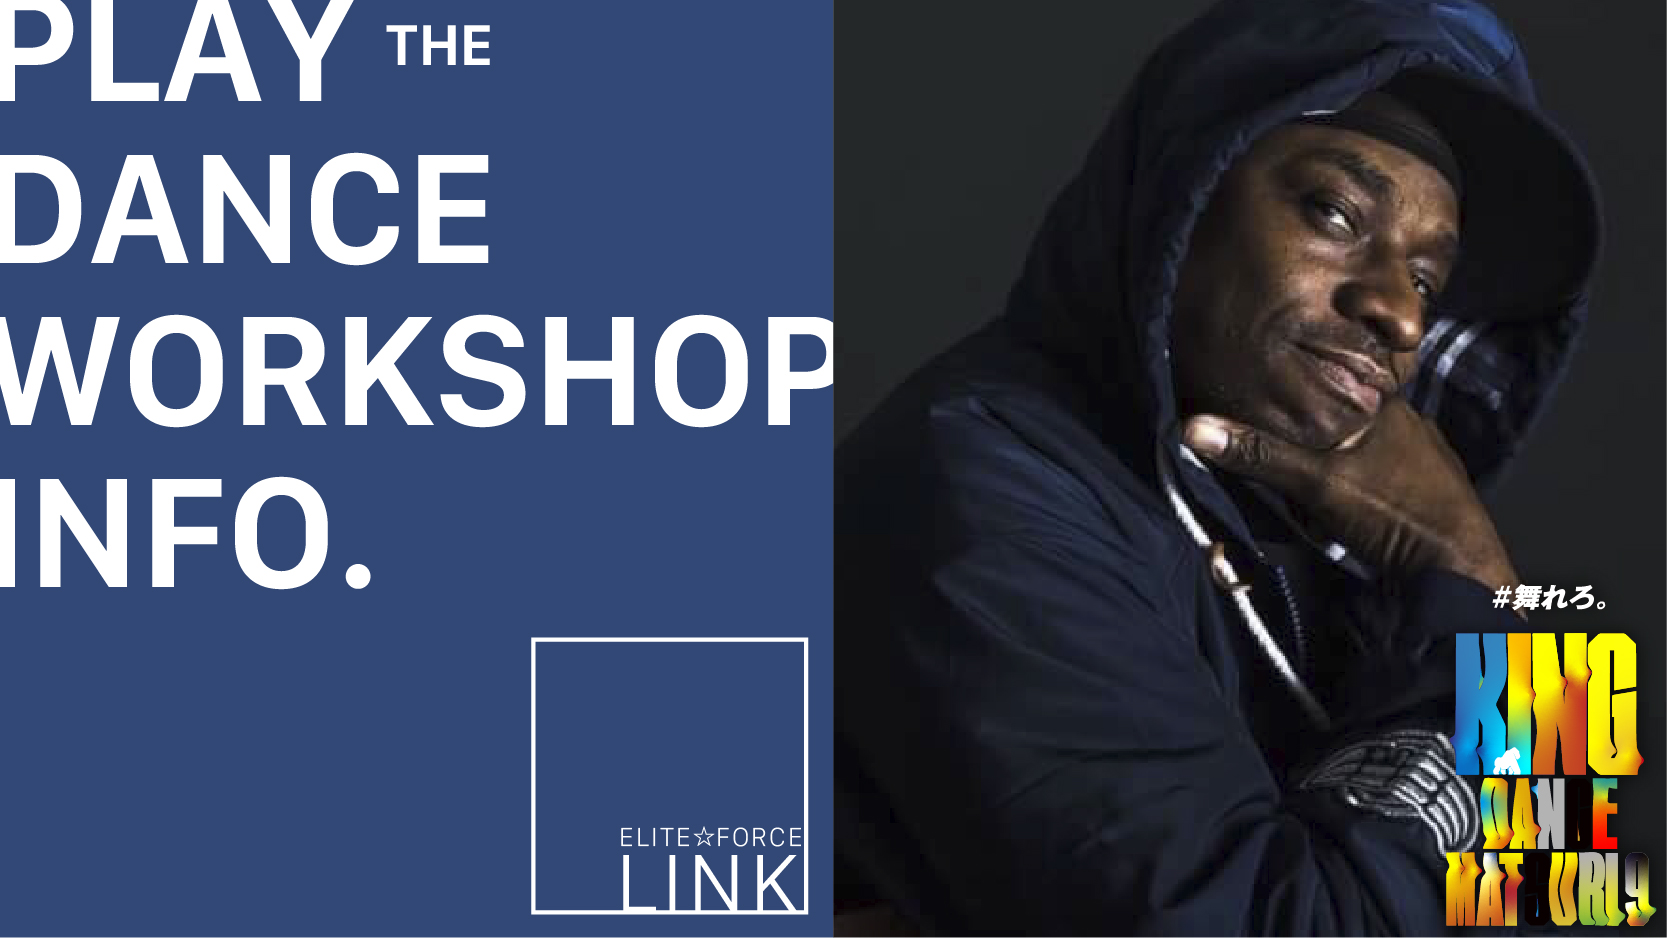 KDM9 presents LINK WORKSHOP